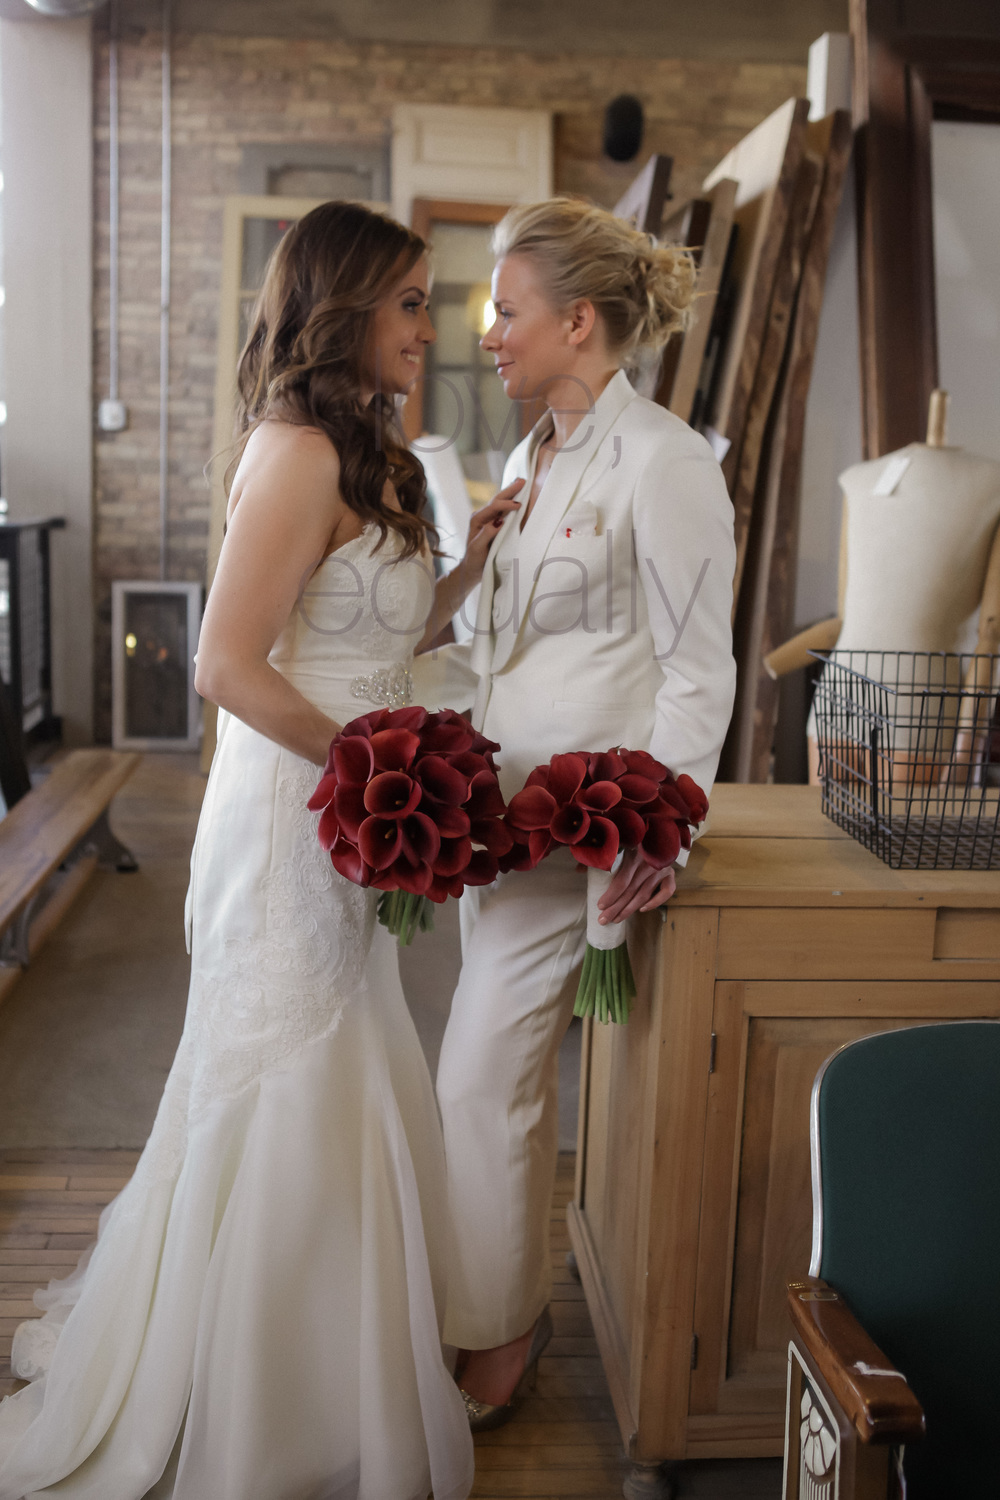 valentines day hotel monaco chicago gay marriage equality brides architecual artifacts glam two brides -008.jpg